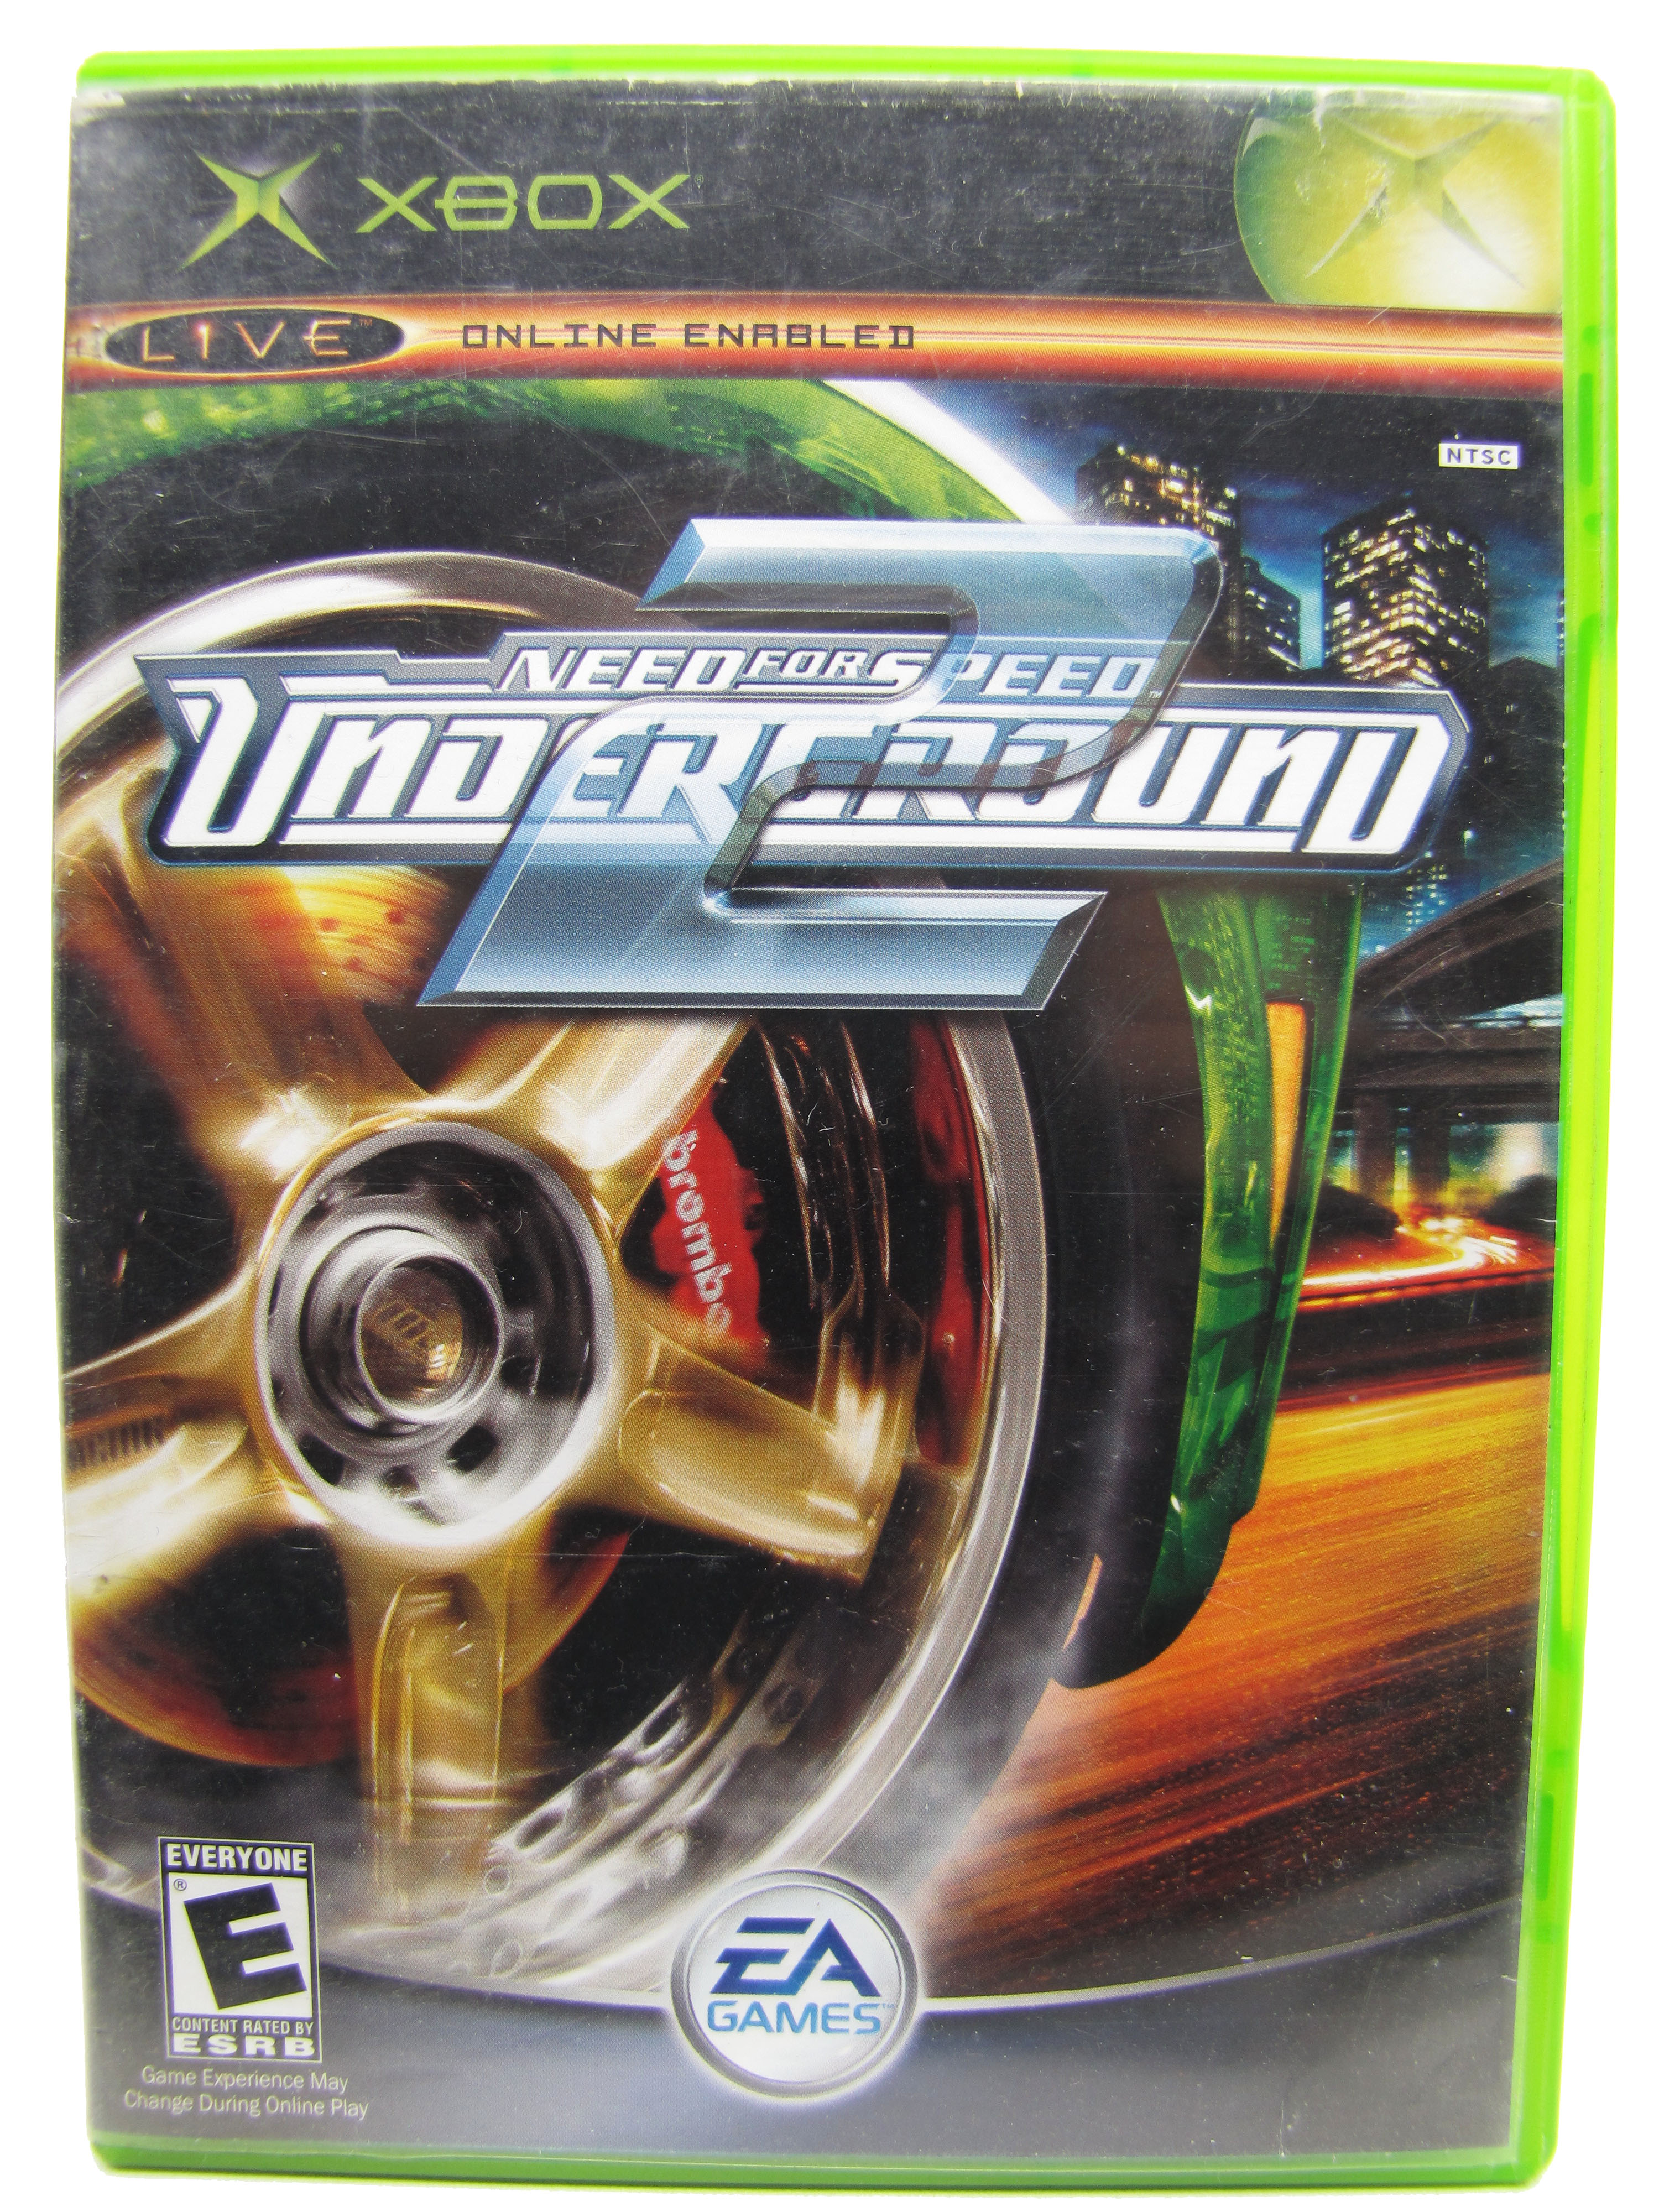 XBOX Need for Speed: Underground 2 Complete - 2004